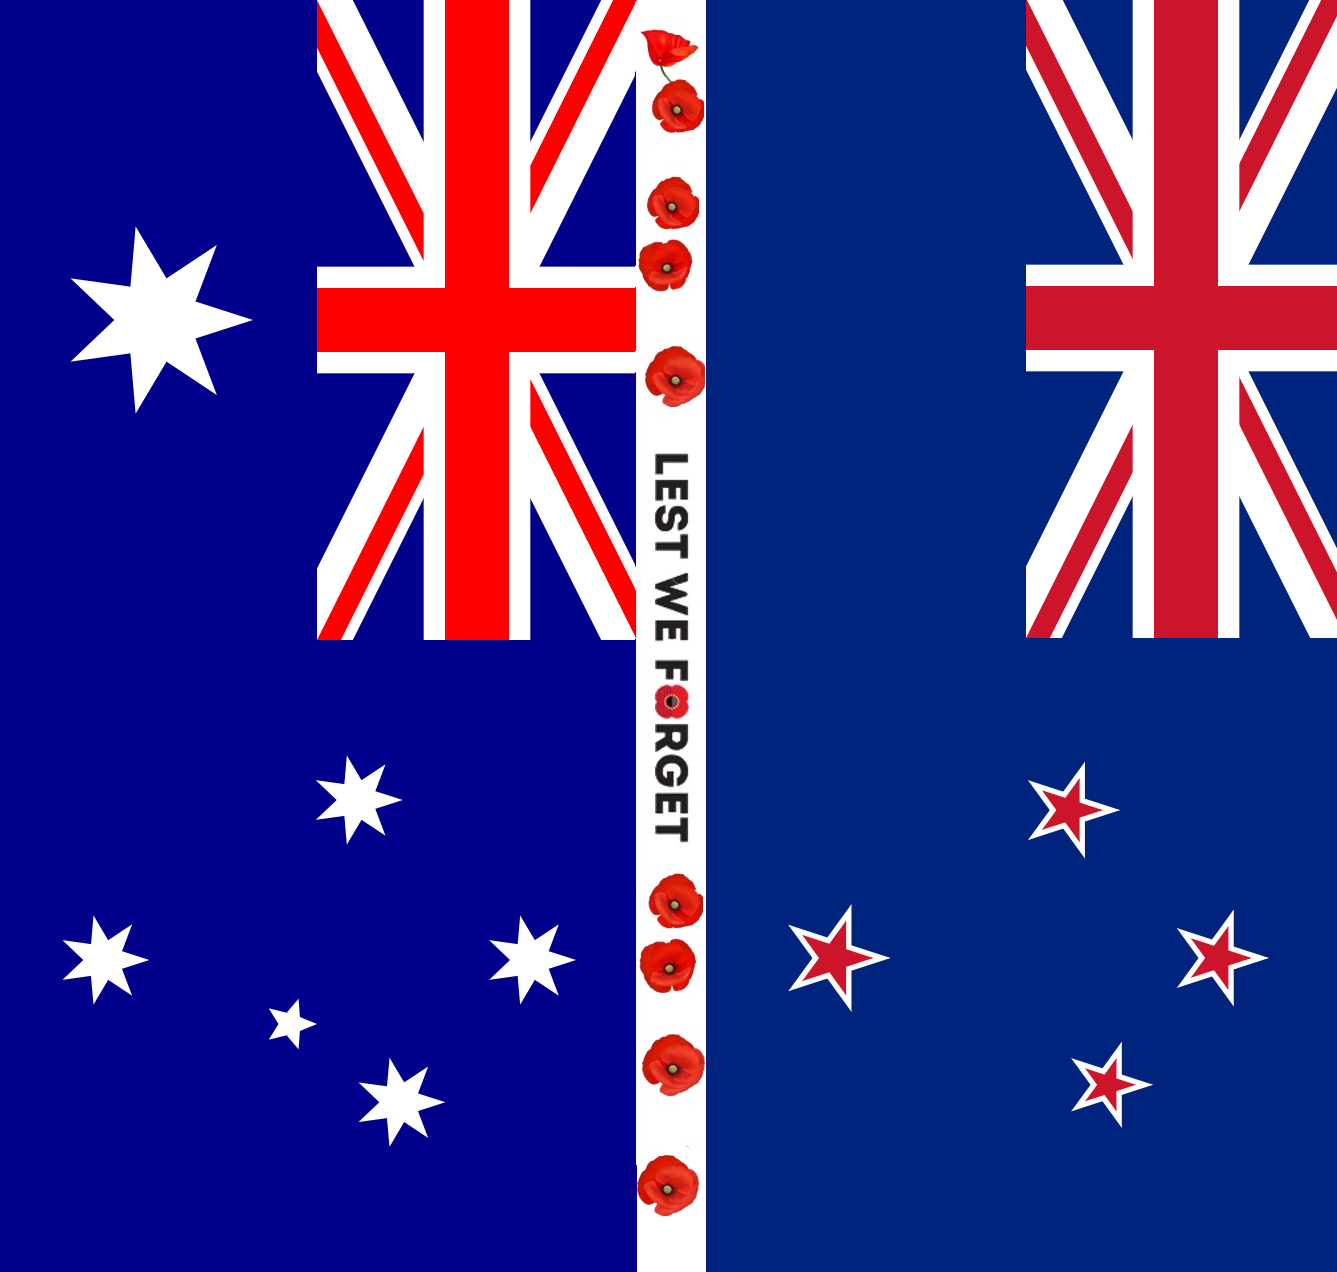 Flags of Australia and New Zealand